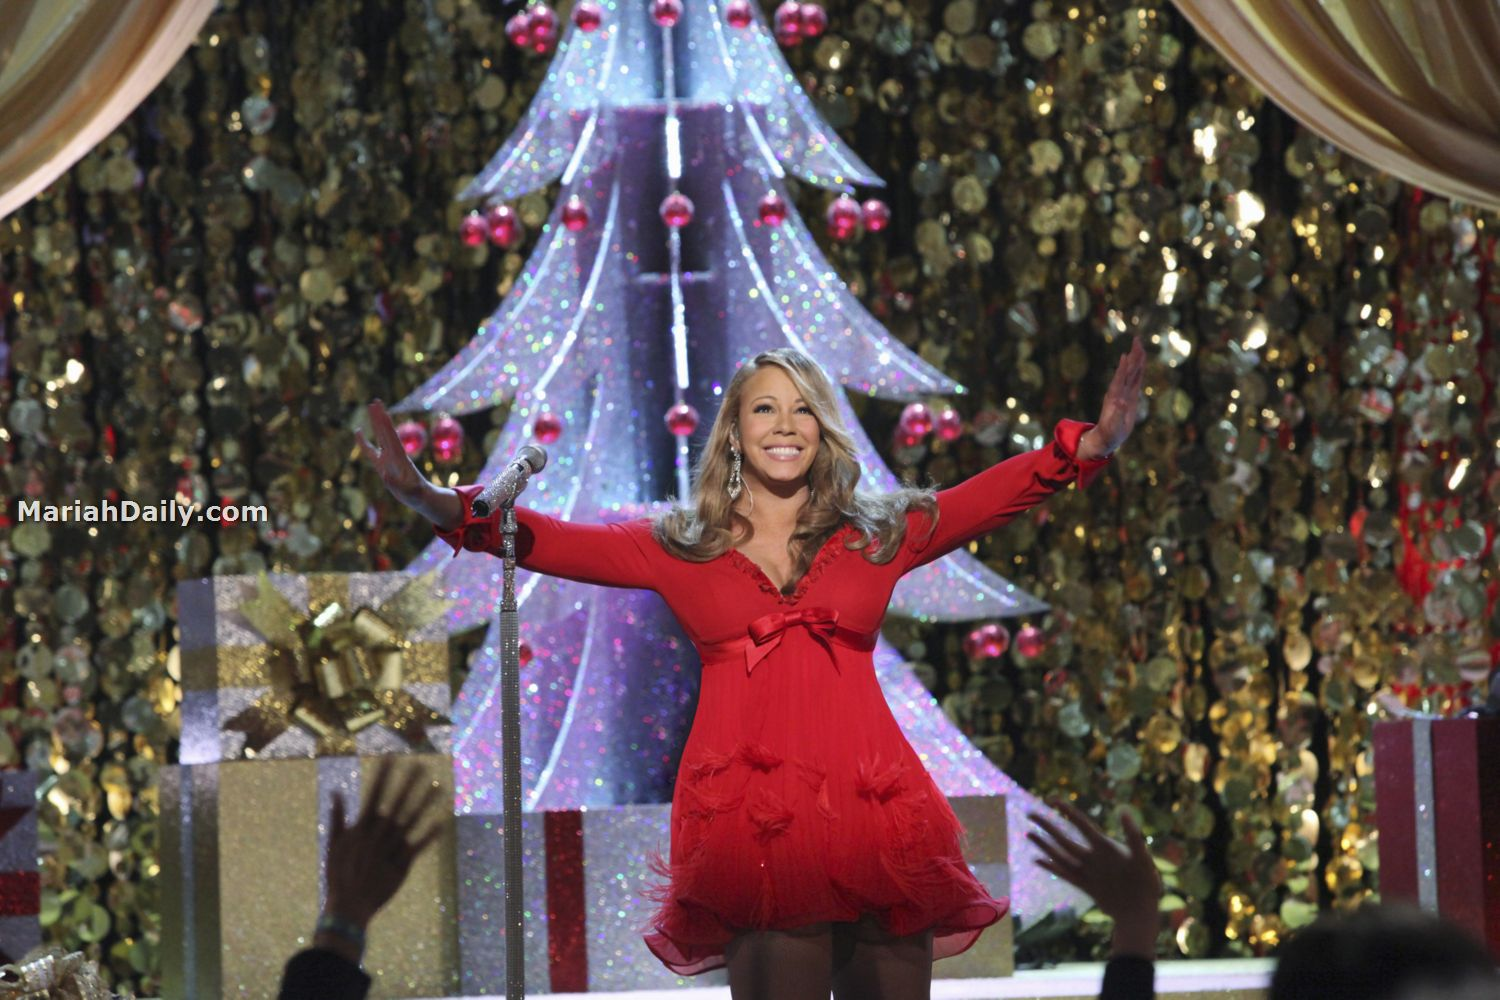 mariah11 Hot Shots: Mariah Carey Dazzles In Christmas Special